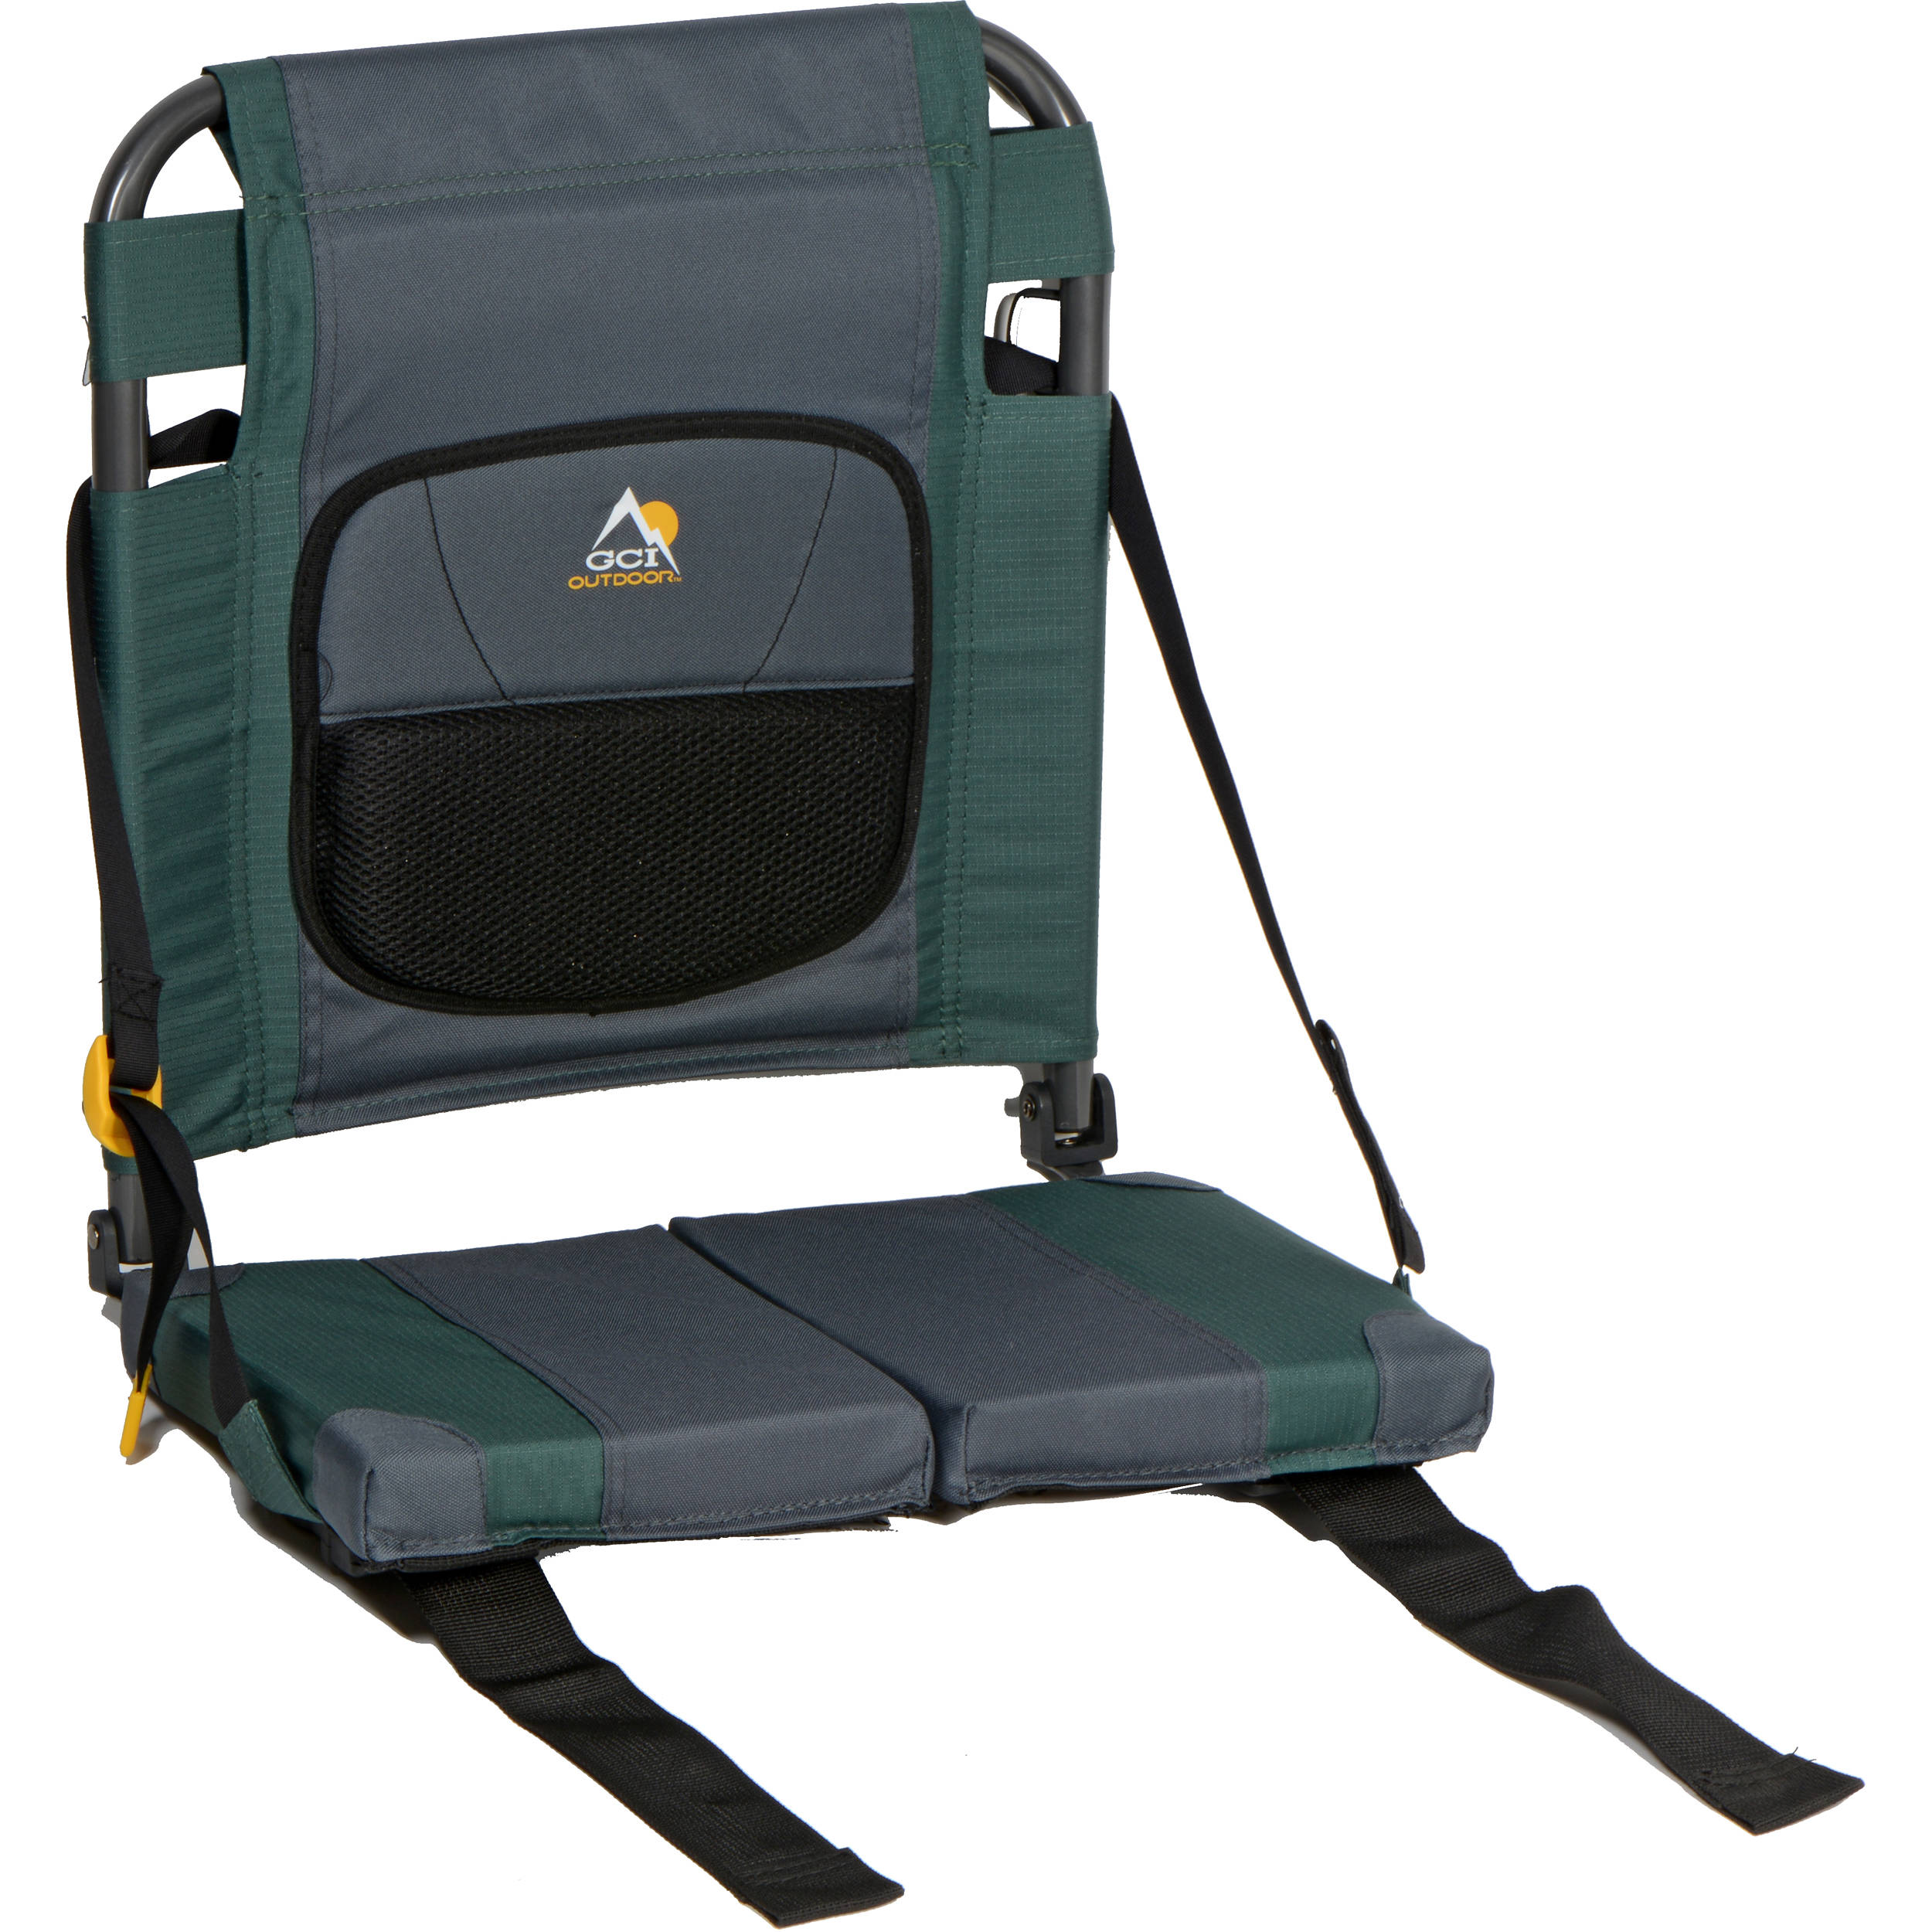 Gci Outdoor Sitbacker Canoe Seat Hunter 21012 B Amp H Photo